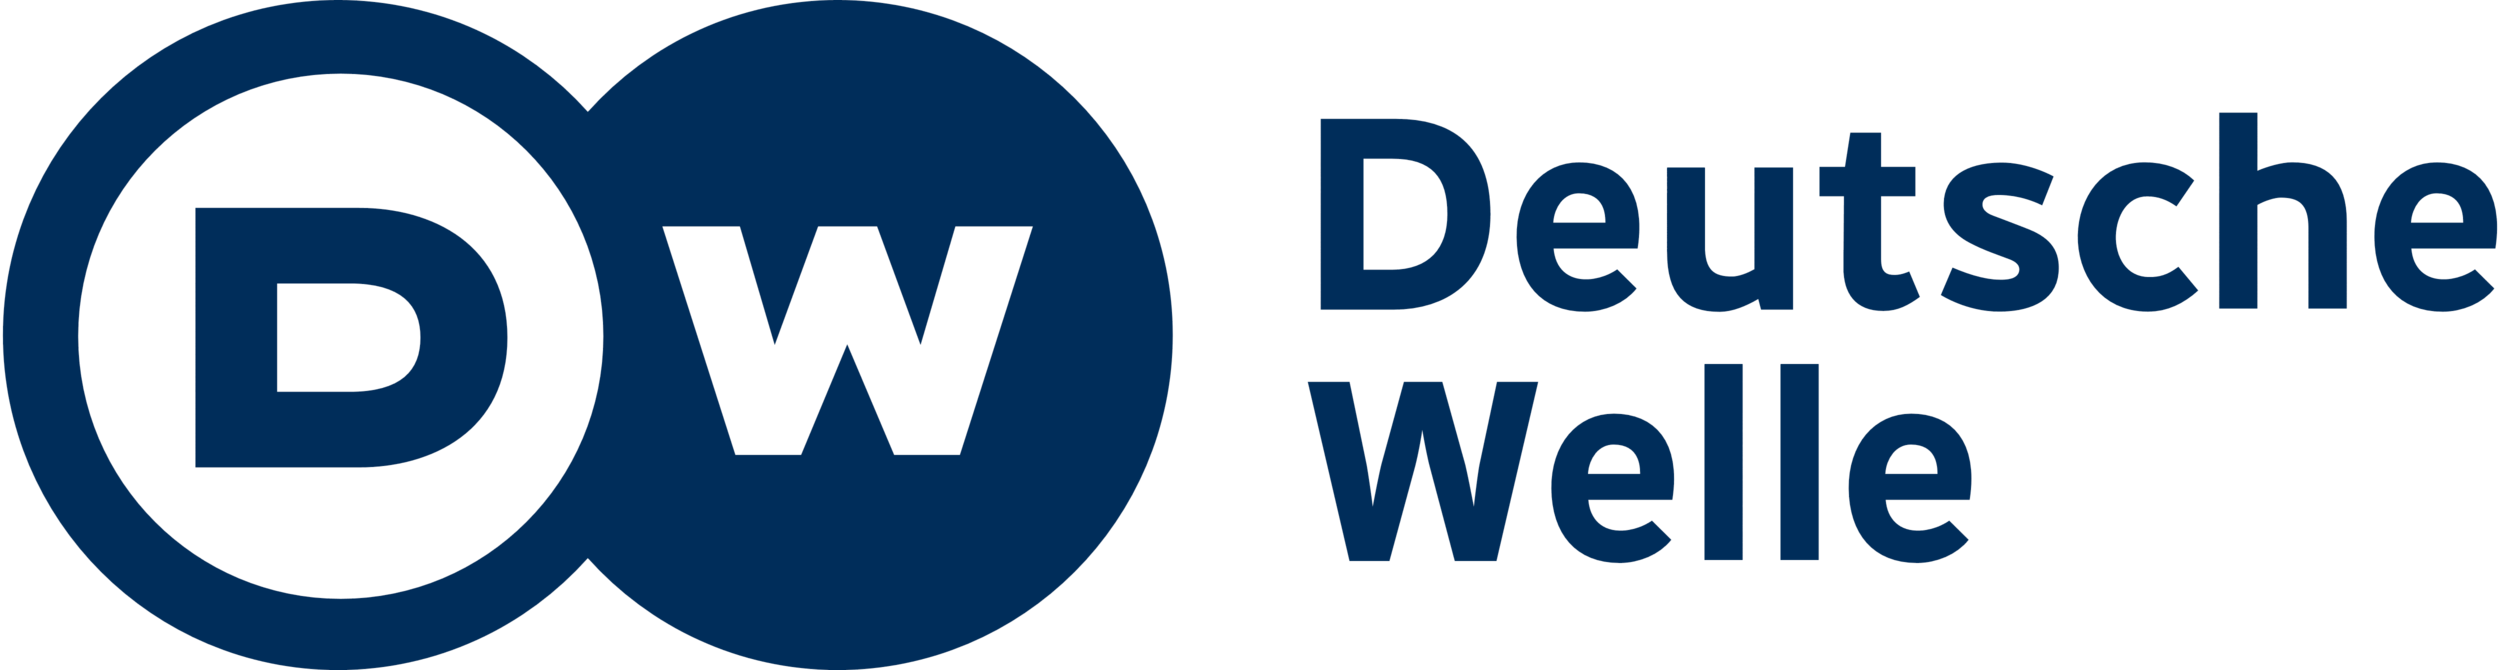 Deutsche_Welle_logo_wordmark.png